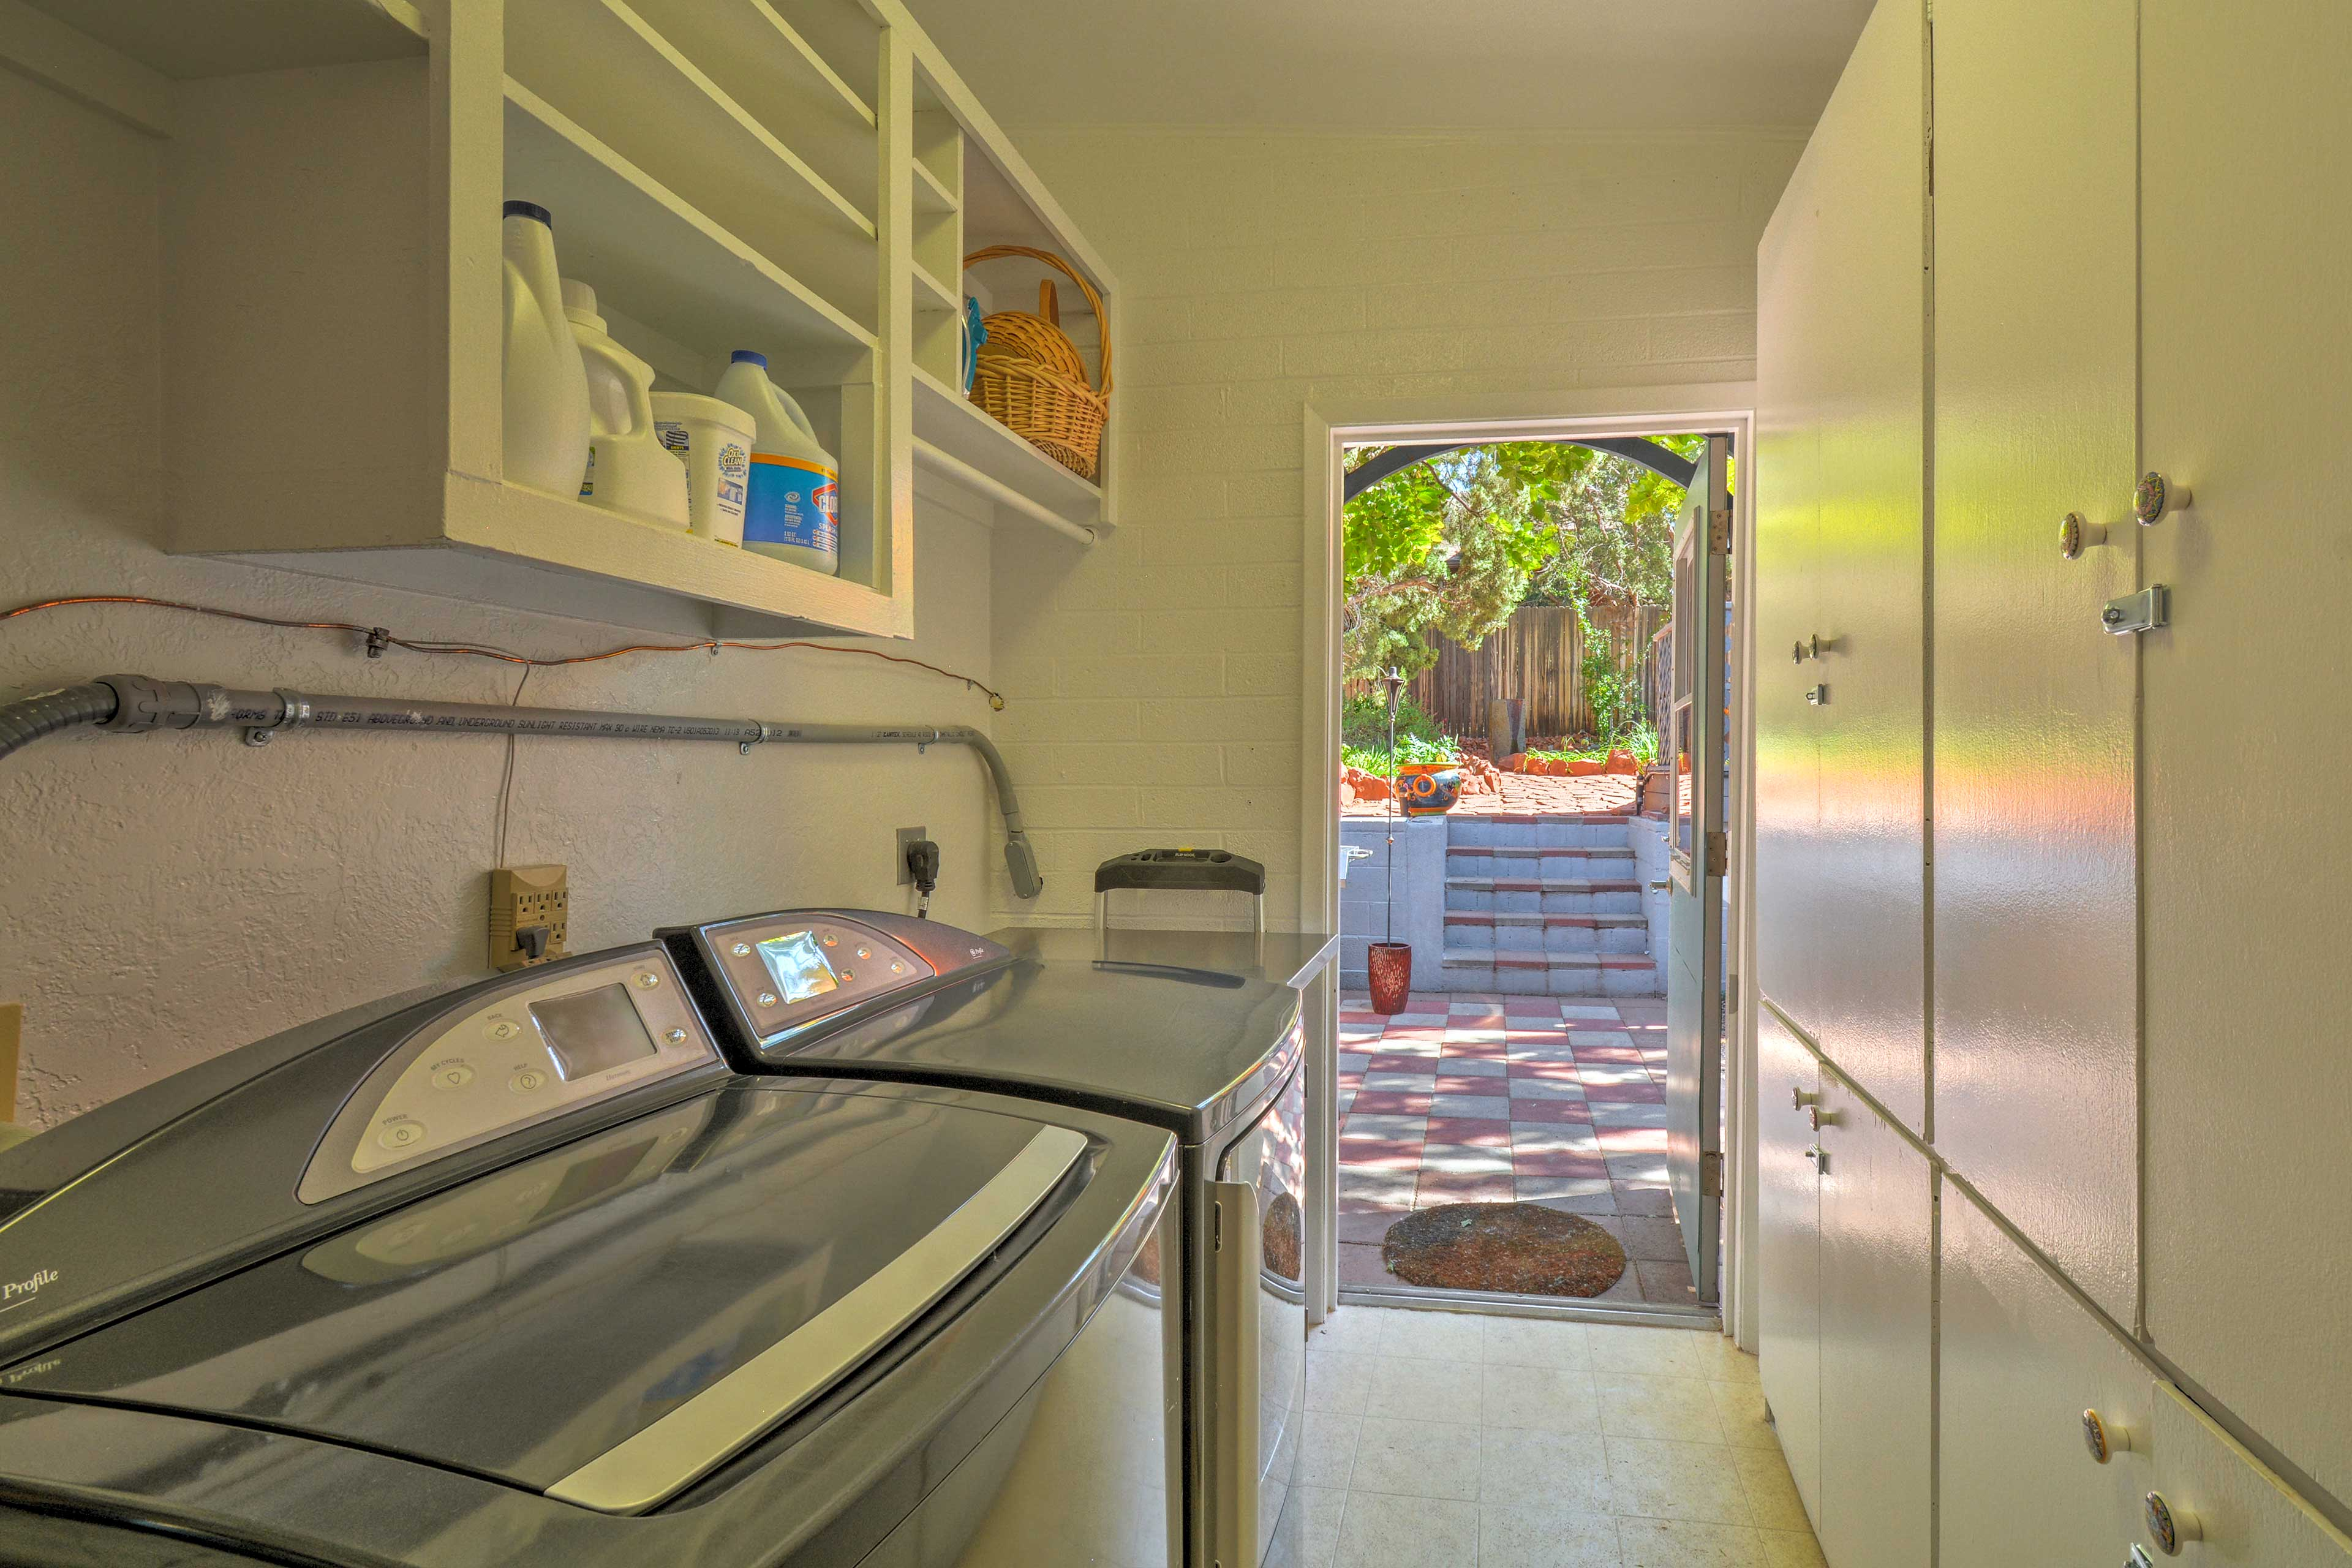 Laundry Room | Washer/Dryer